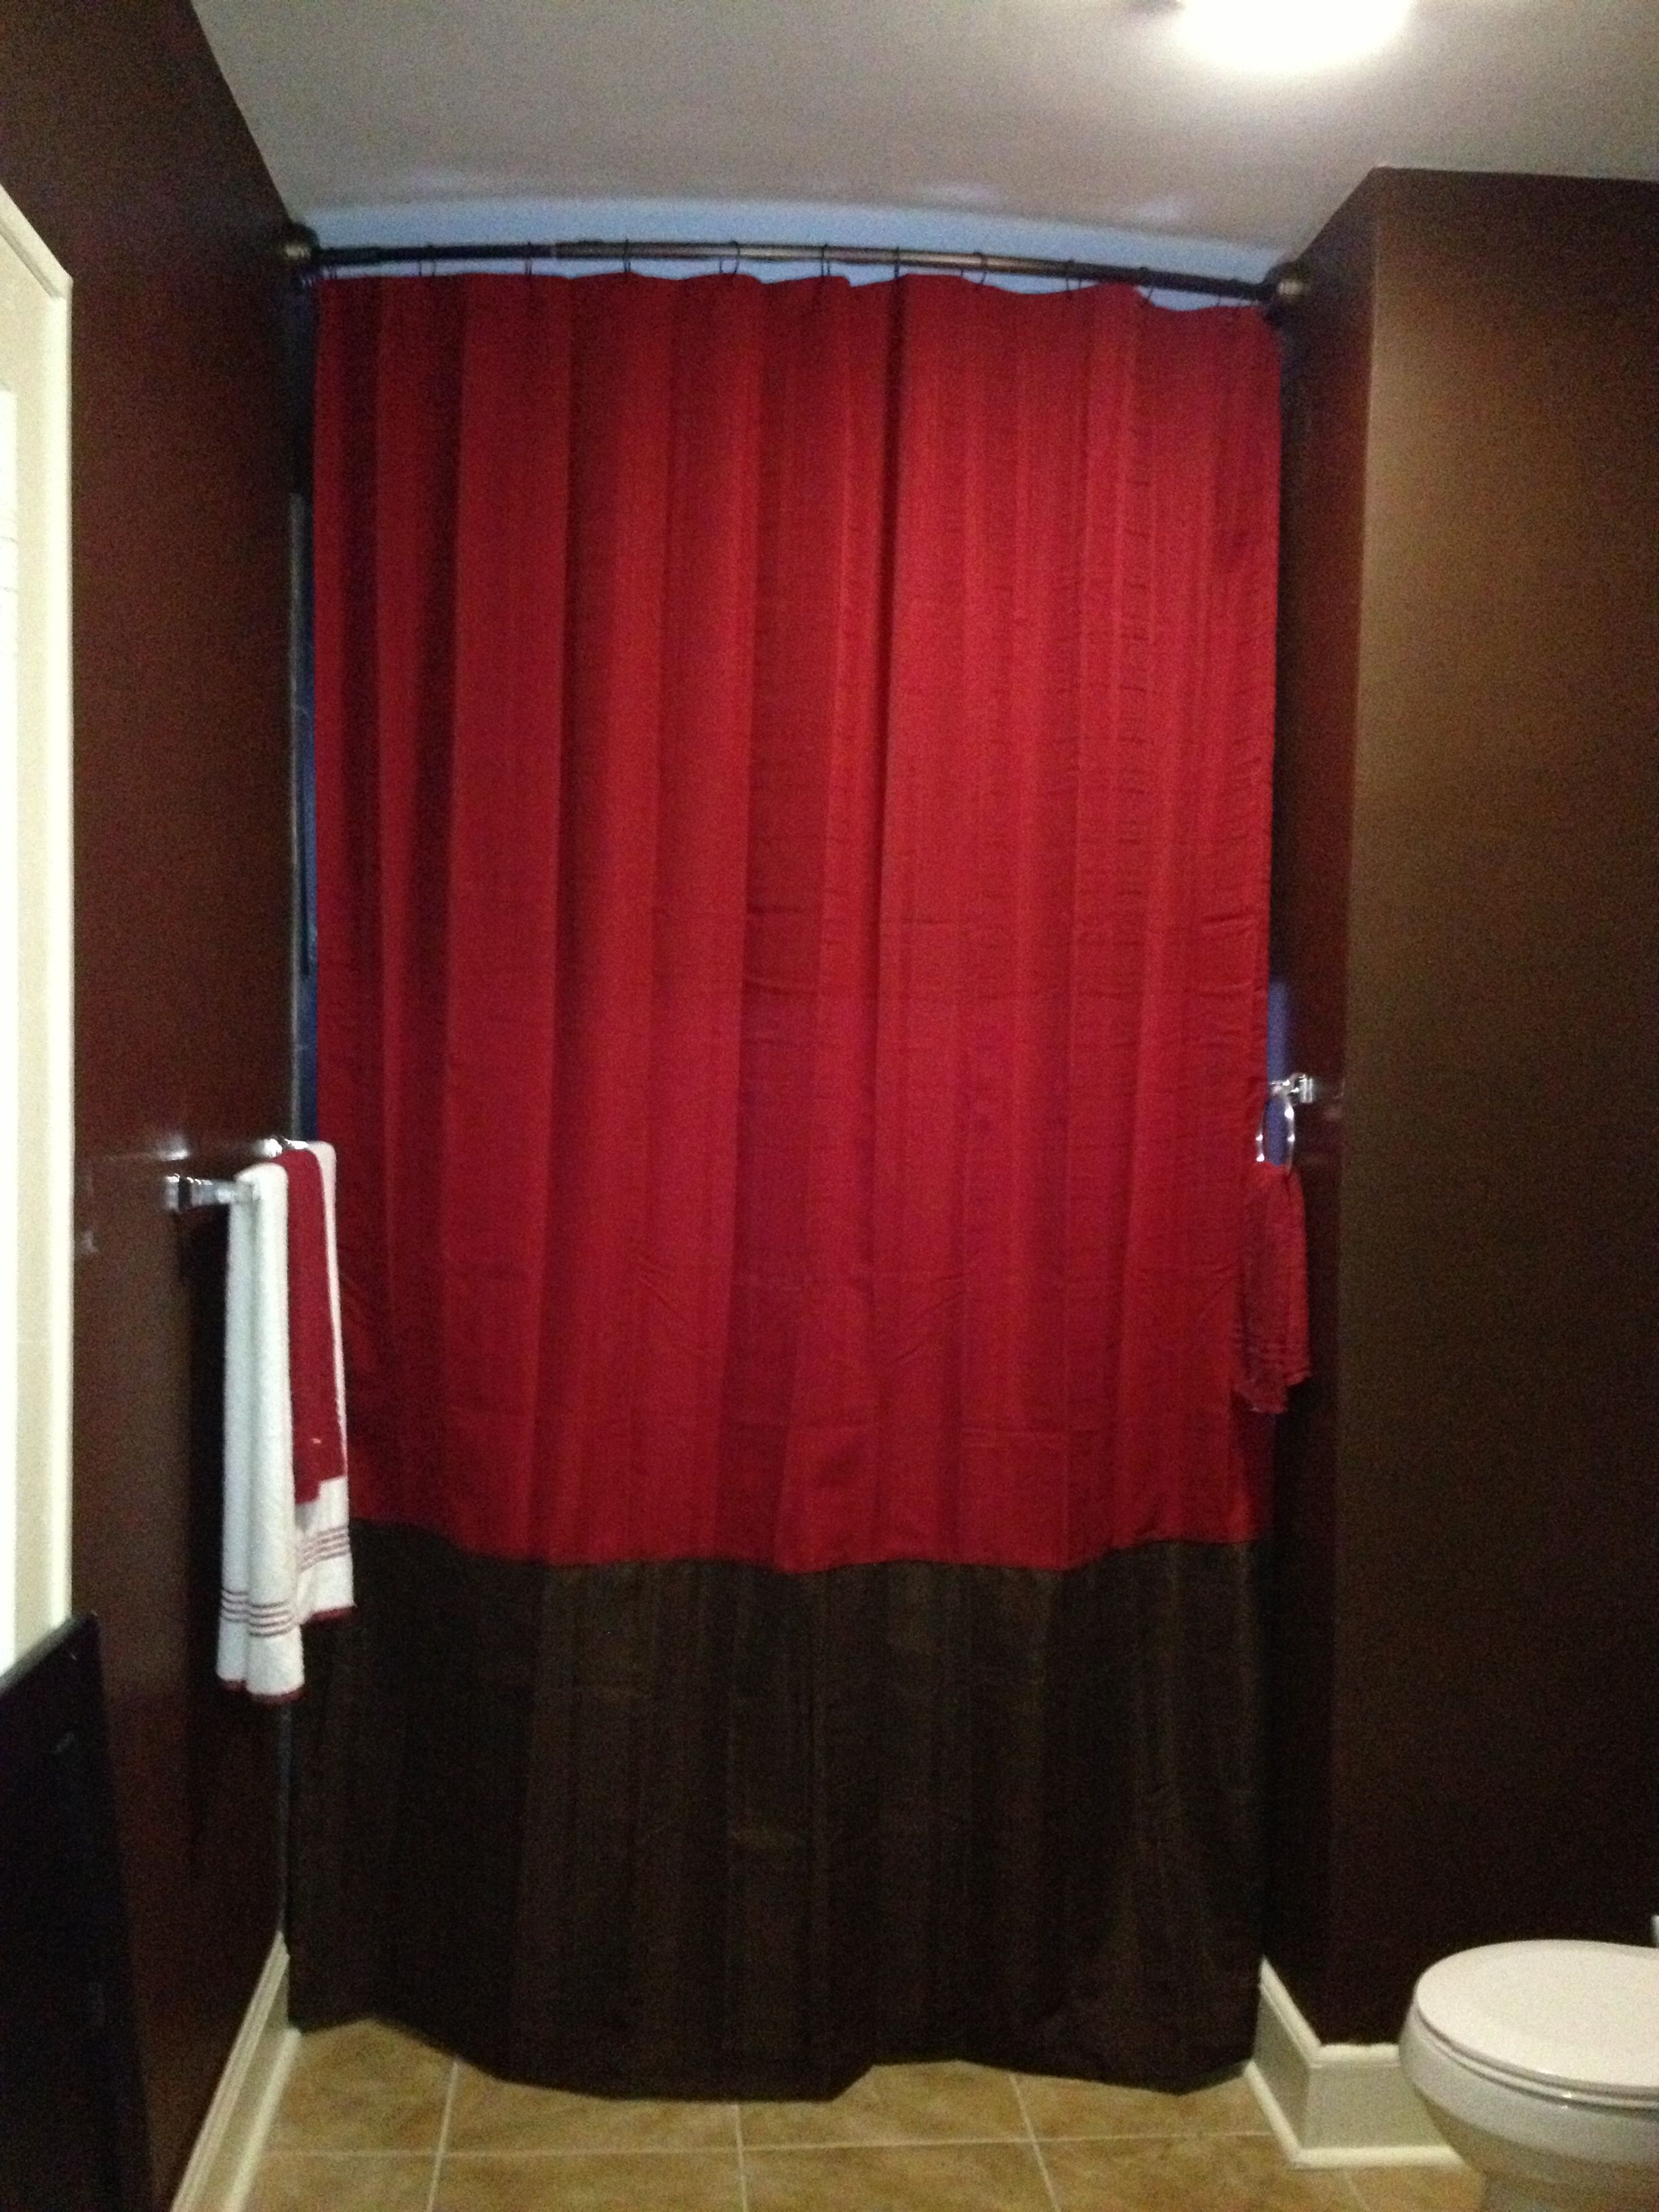 DIY Tutorial Extra Long Chocolate Brown And Red Bathroom Shower Curtain Super Tall For My 10 High Ceilings Wall Color Sherwin William